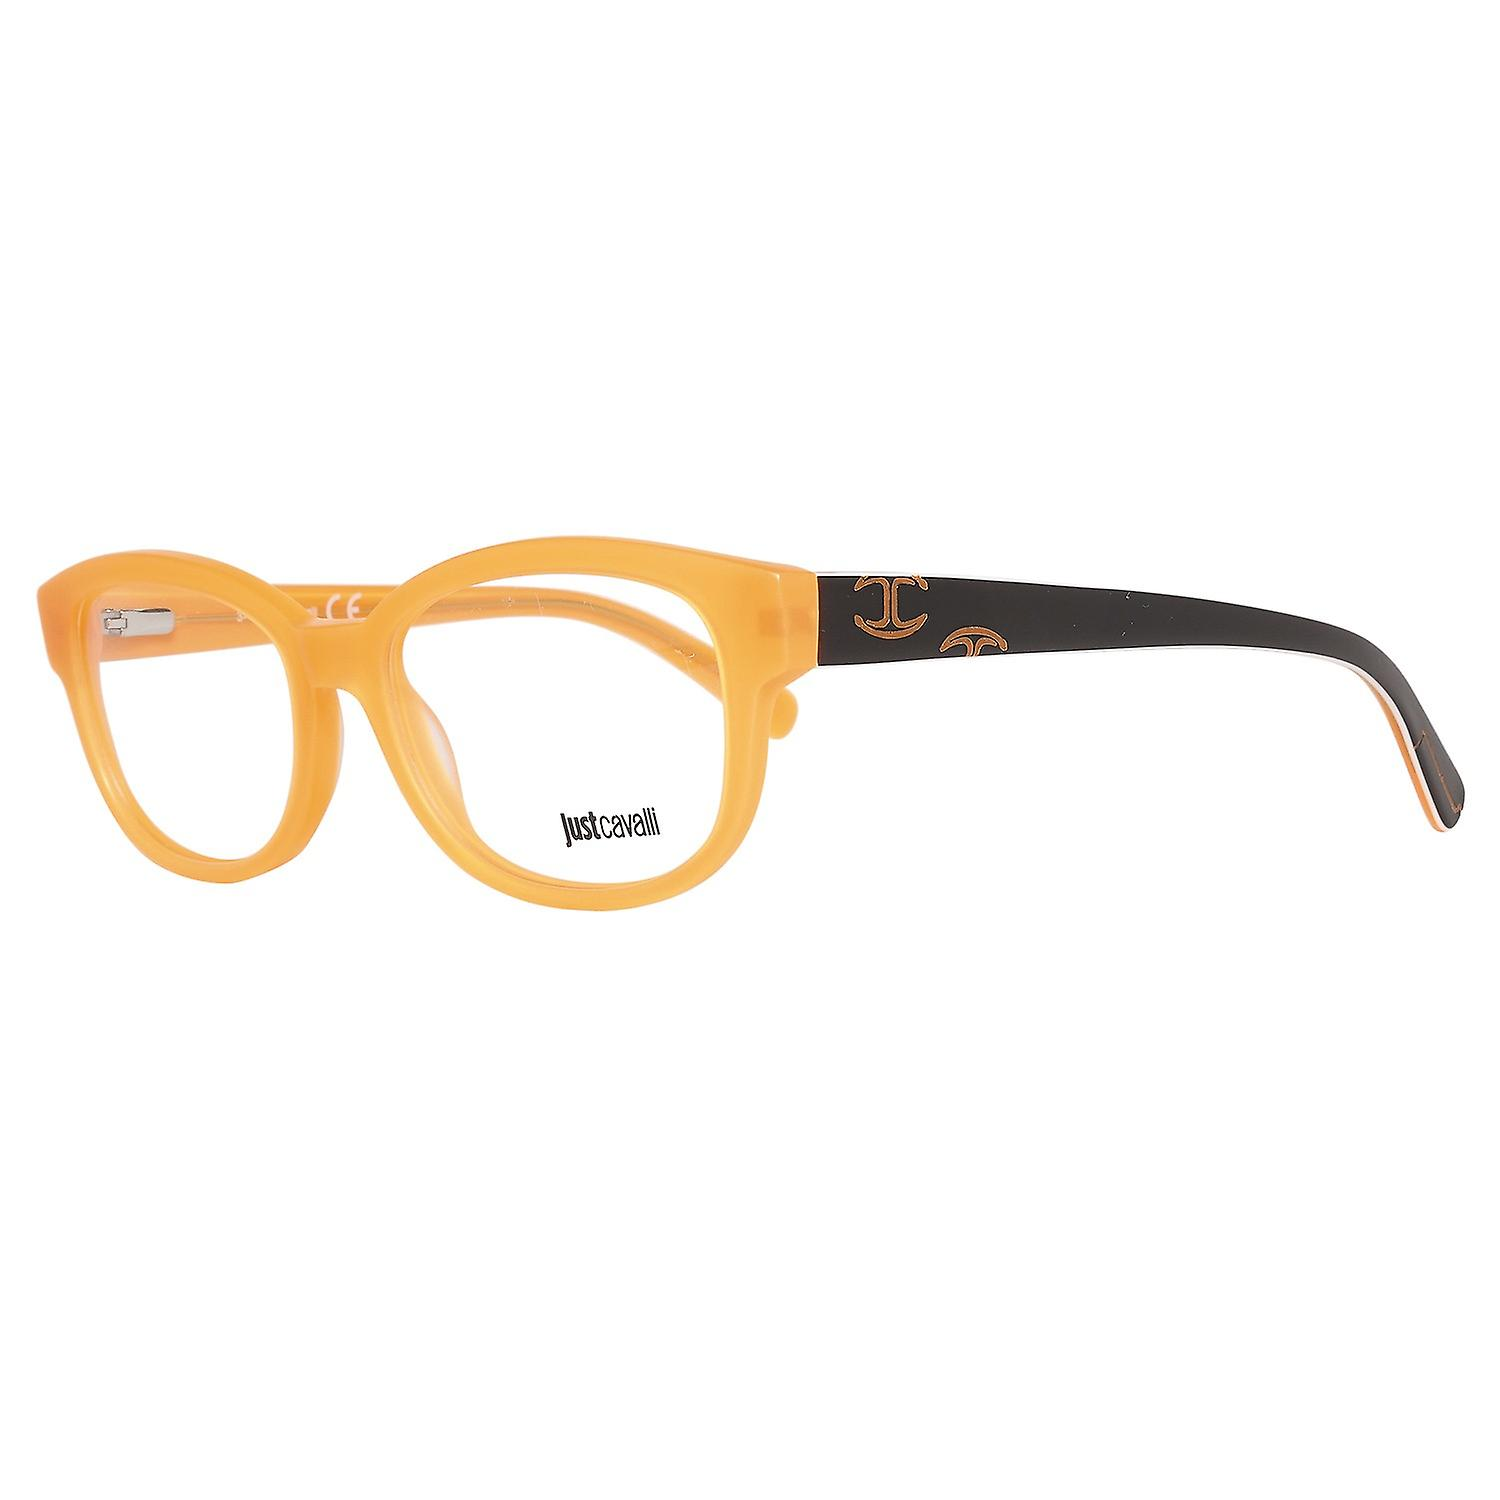 Just Cavalli Brille Orange | Fruugo